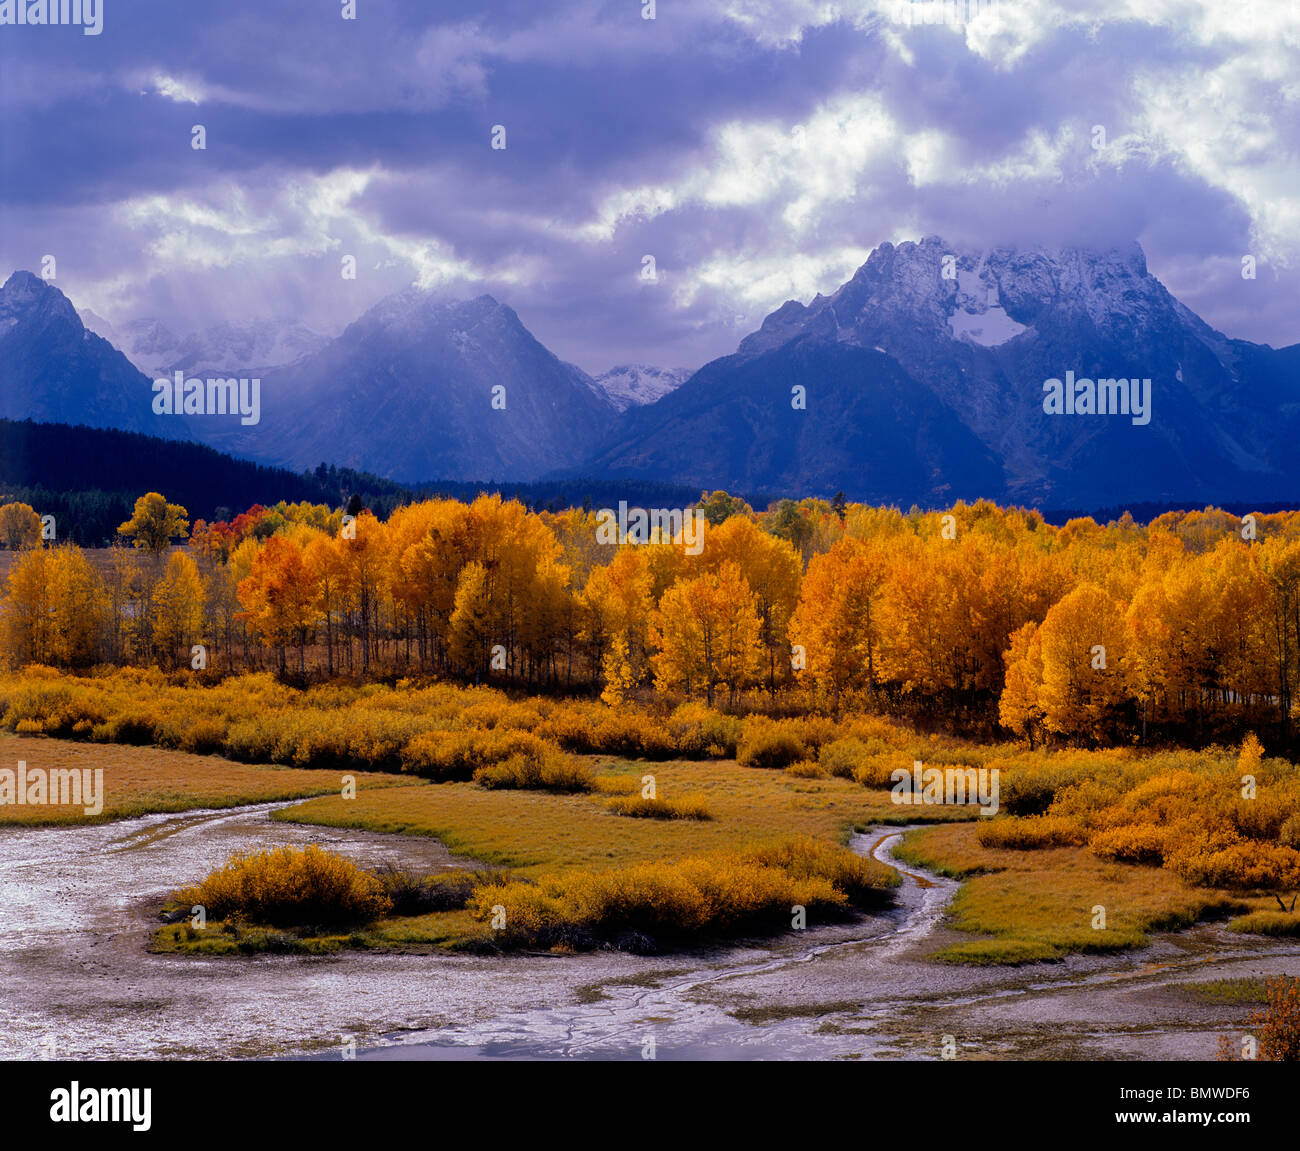 Grand Teton National Park, WY The sun's rays illuminates an aspen grove at Oxbow Bend with storm clouds over - Stock Image